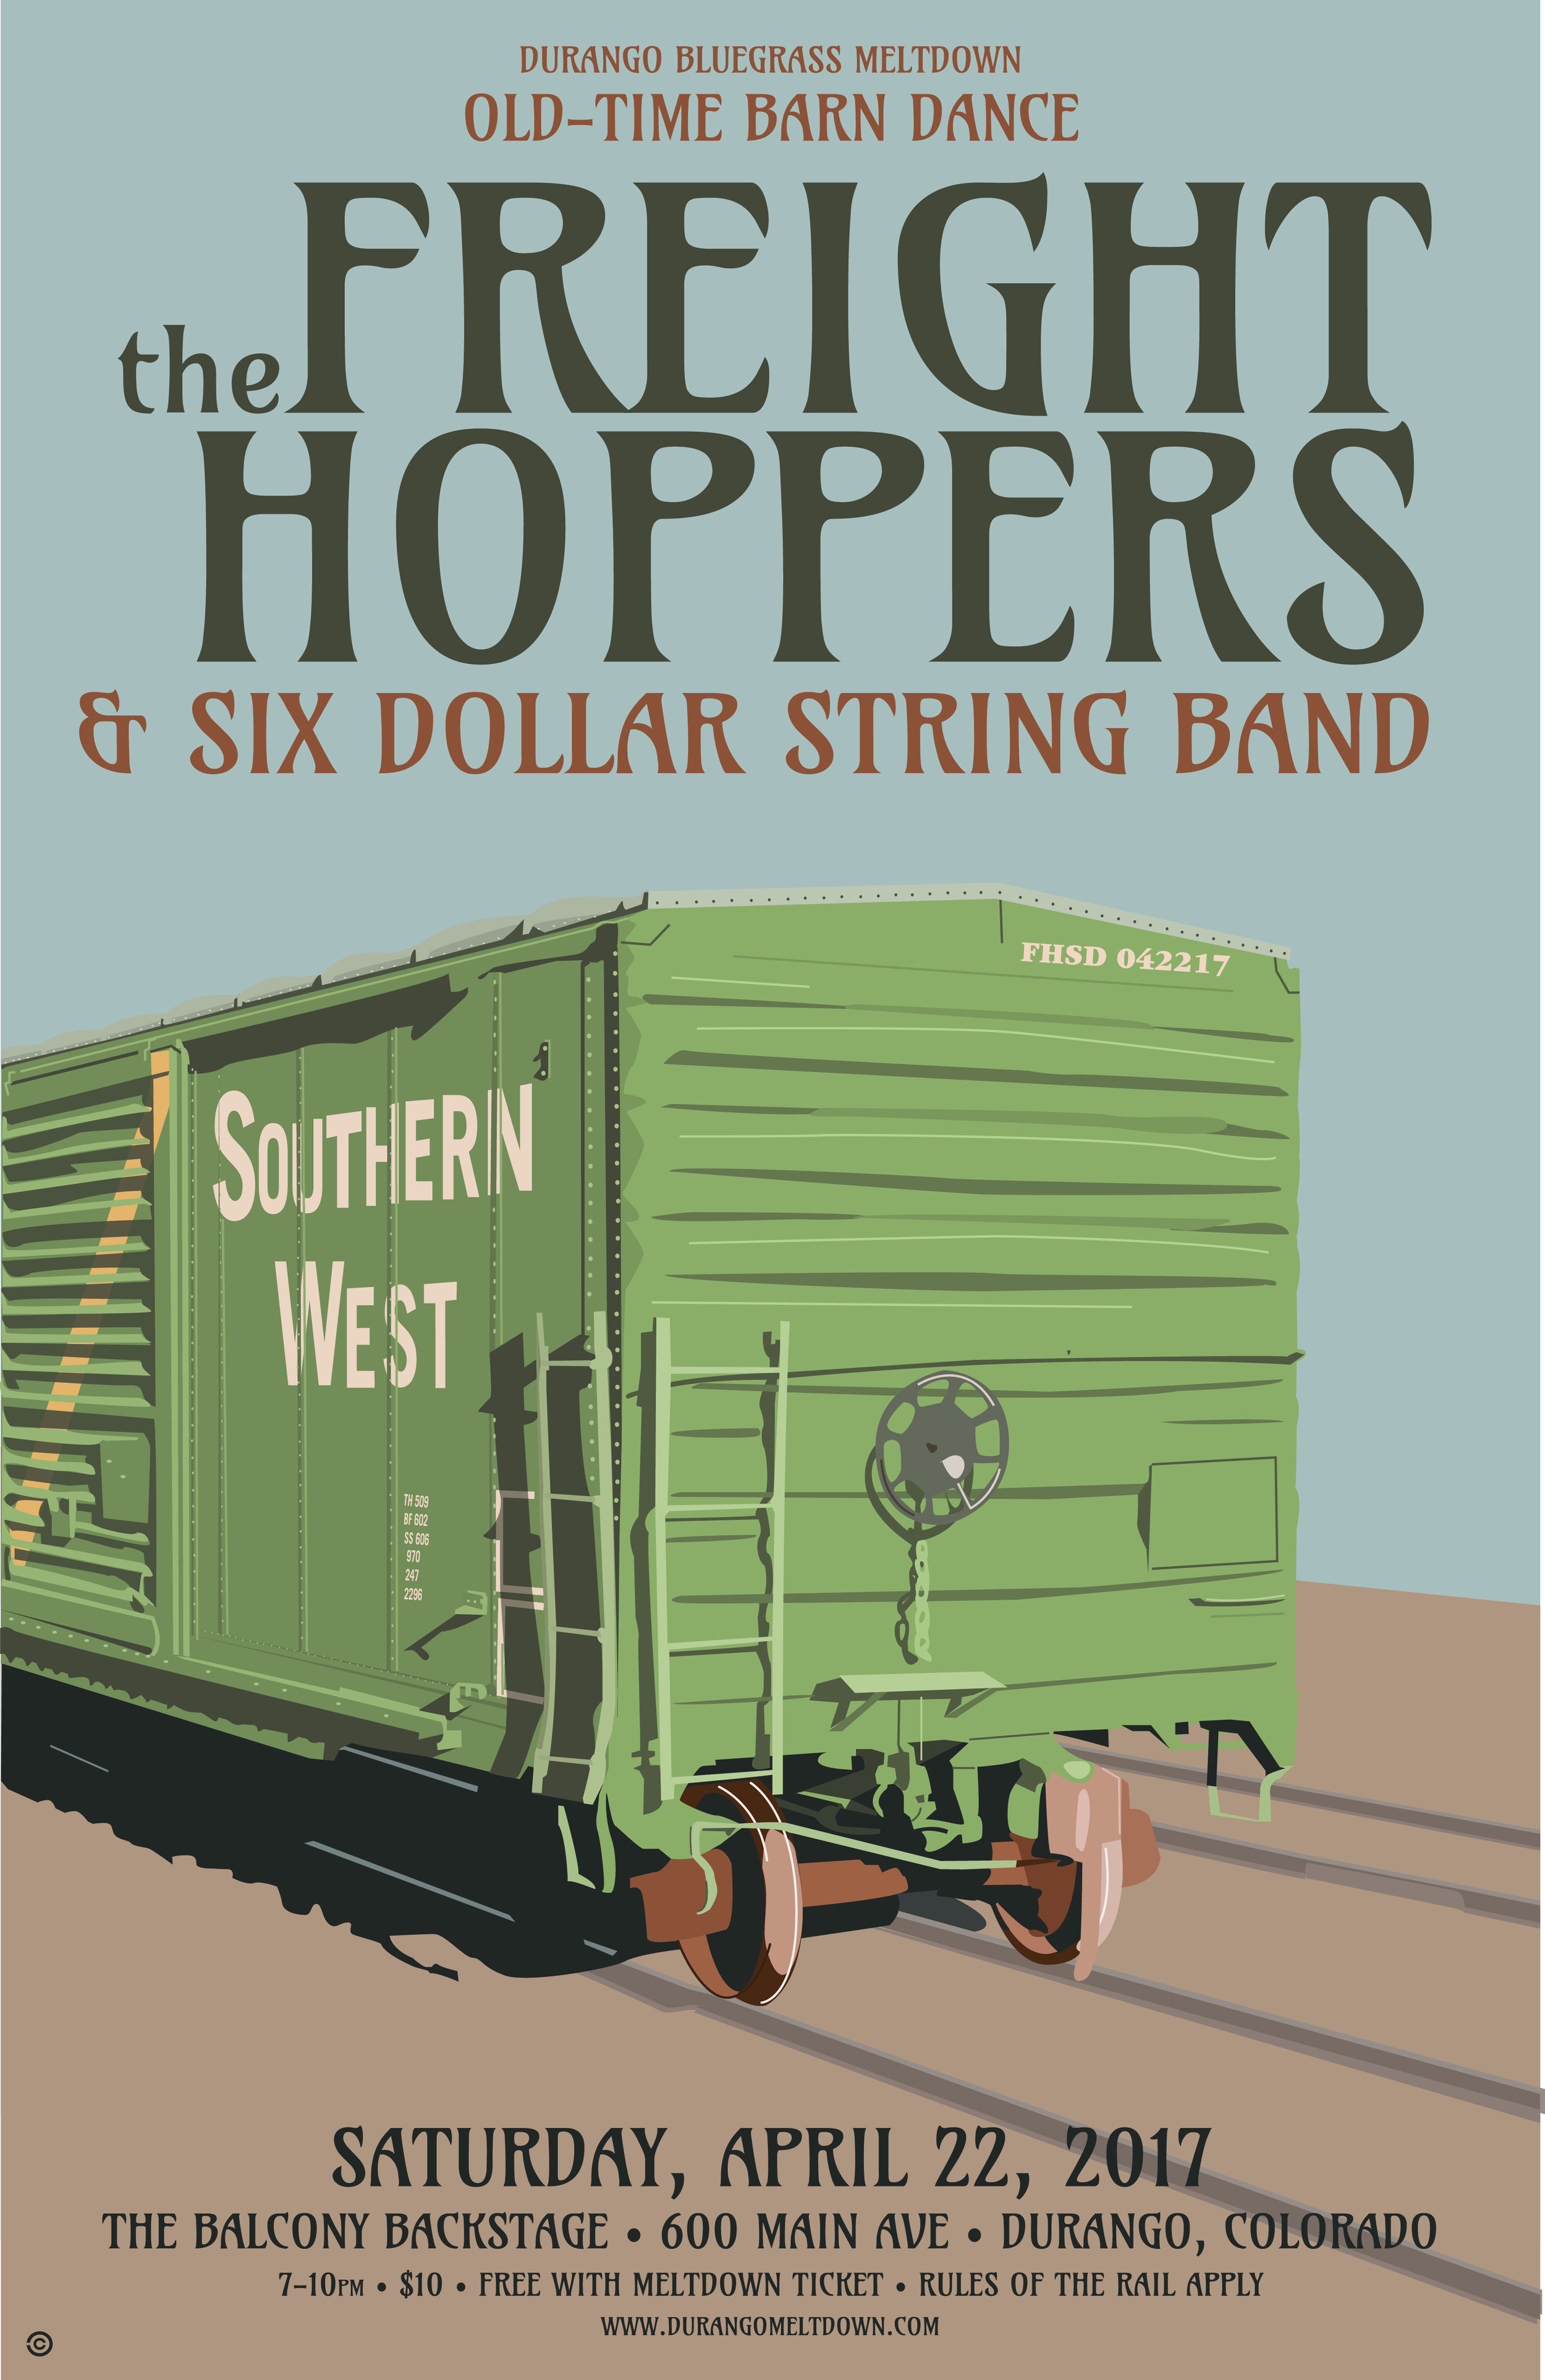 Box Car - The Freight Hoppers & Six Dollar String Band